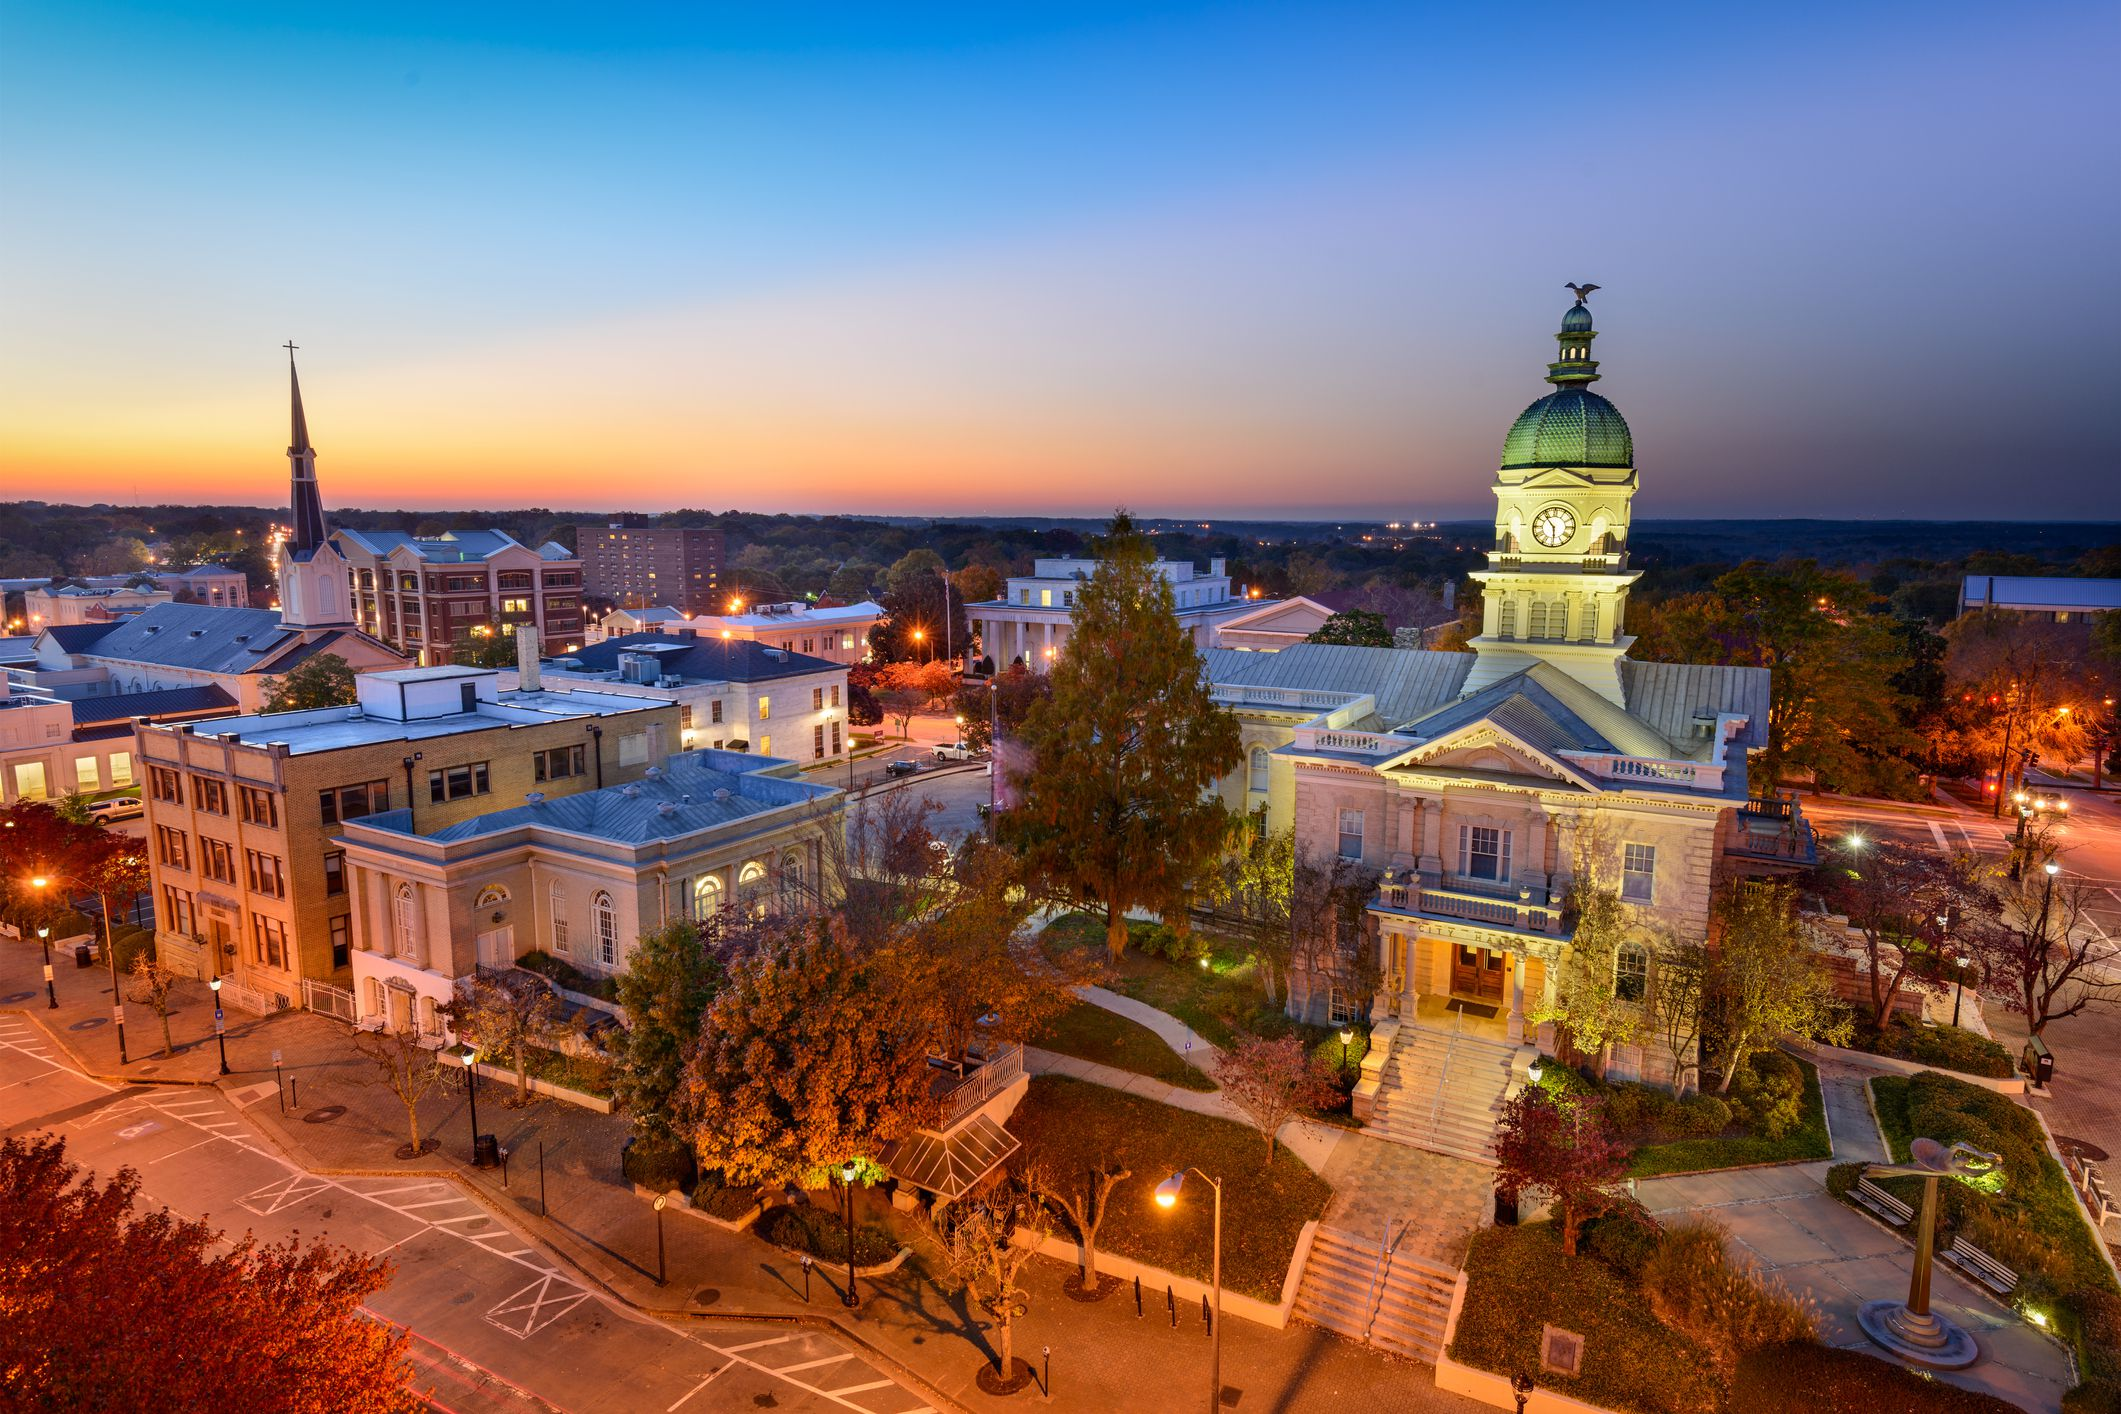 The 12 Things to Do in Athens, Georgia